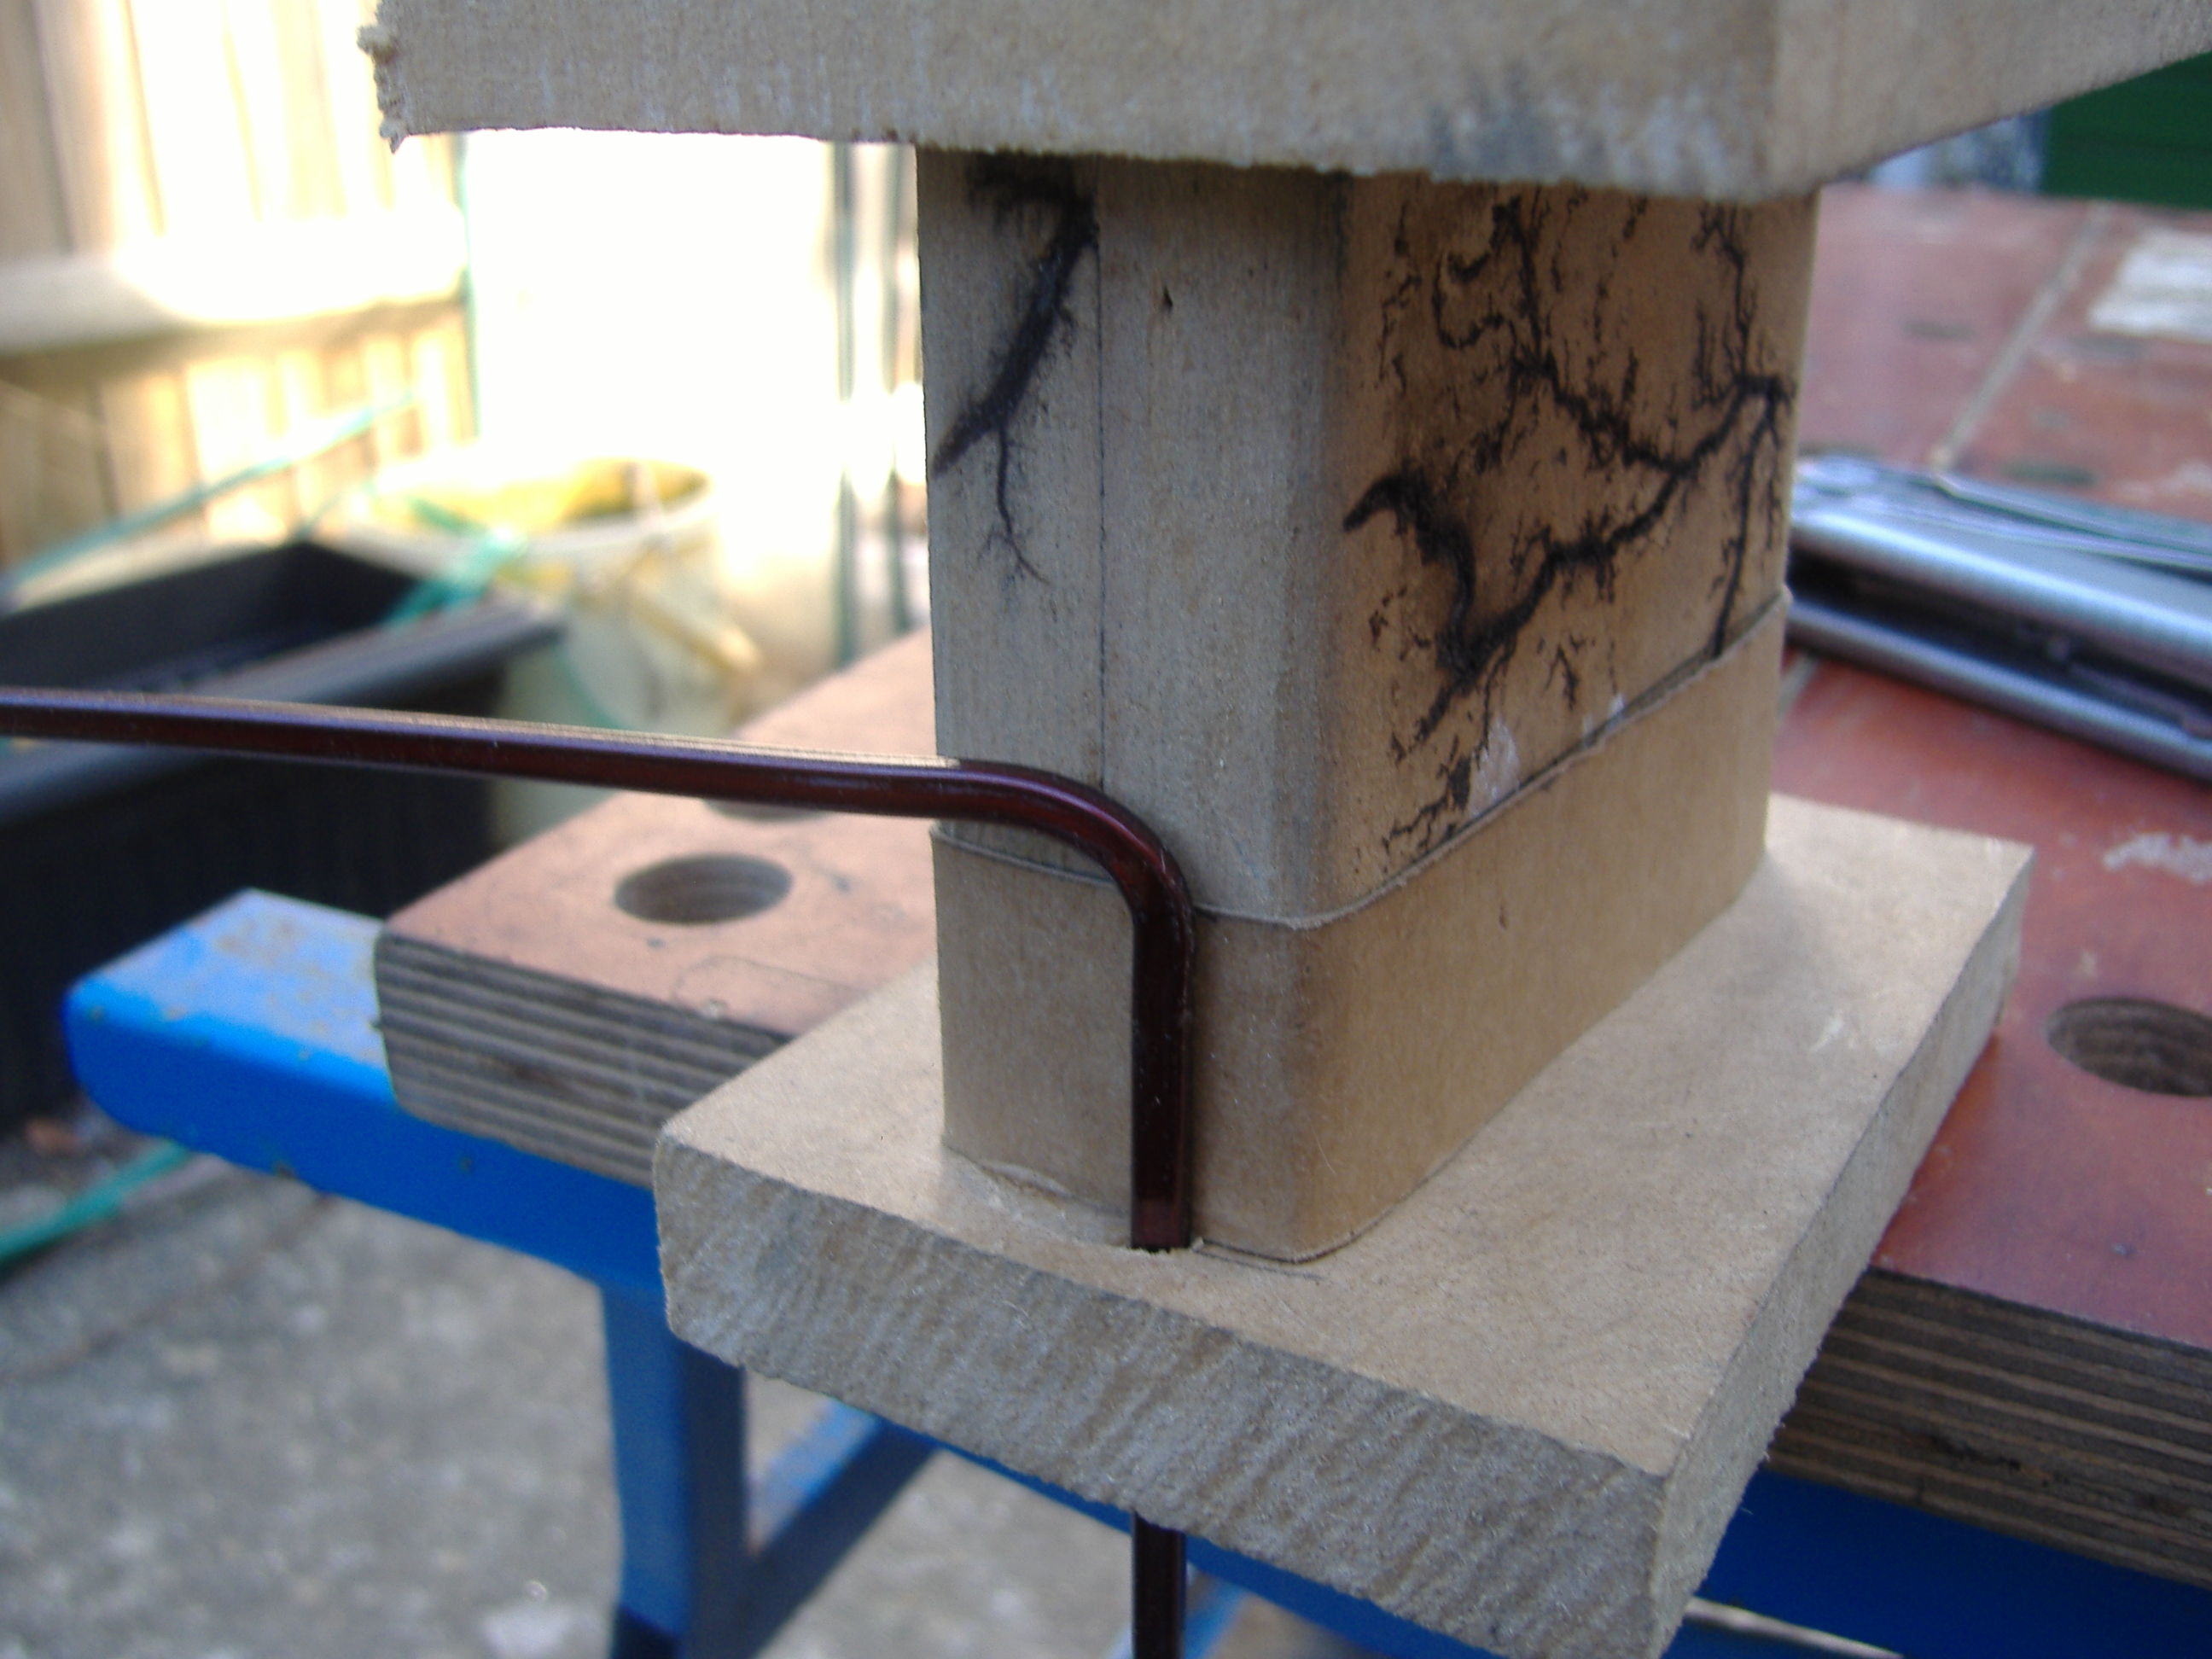 The copper bent and inserted through a hole in the end plate of the former